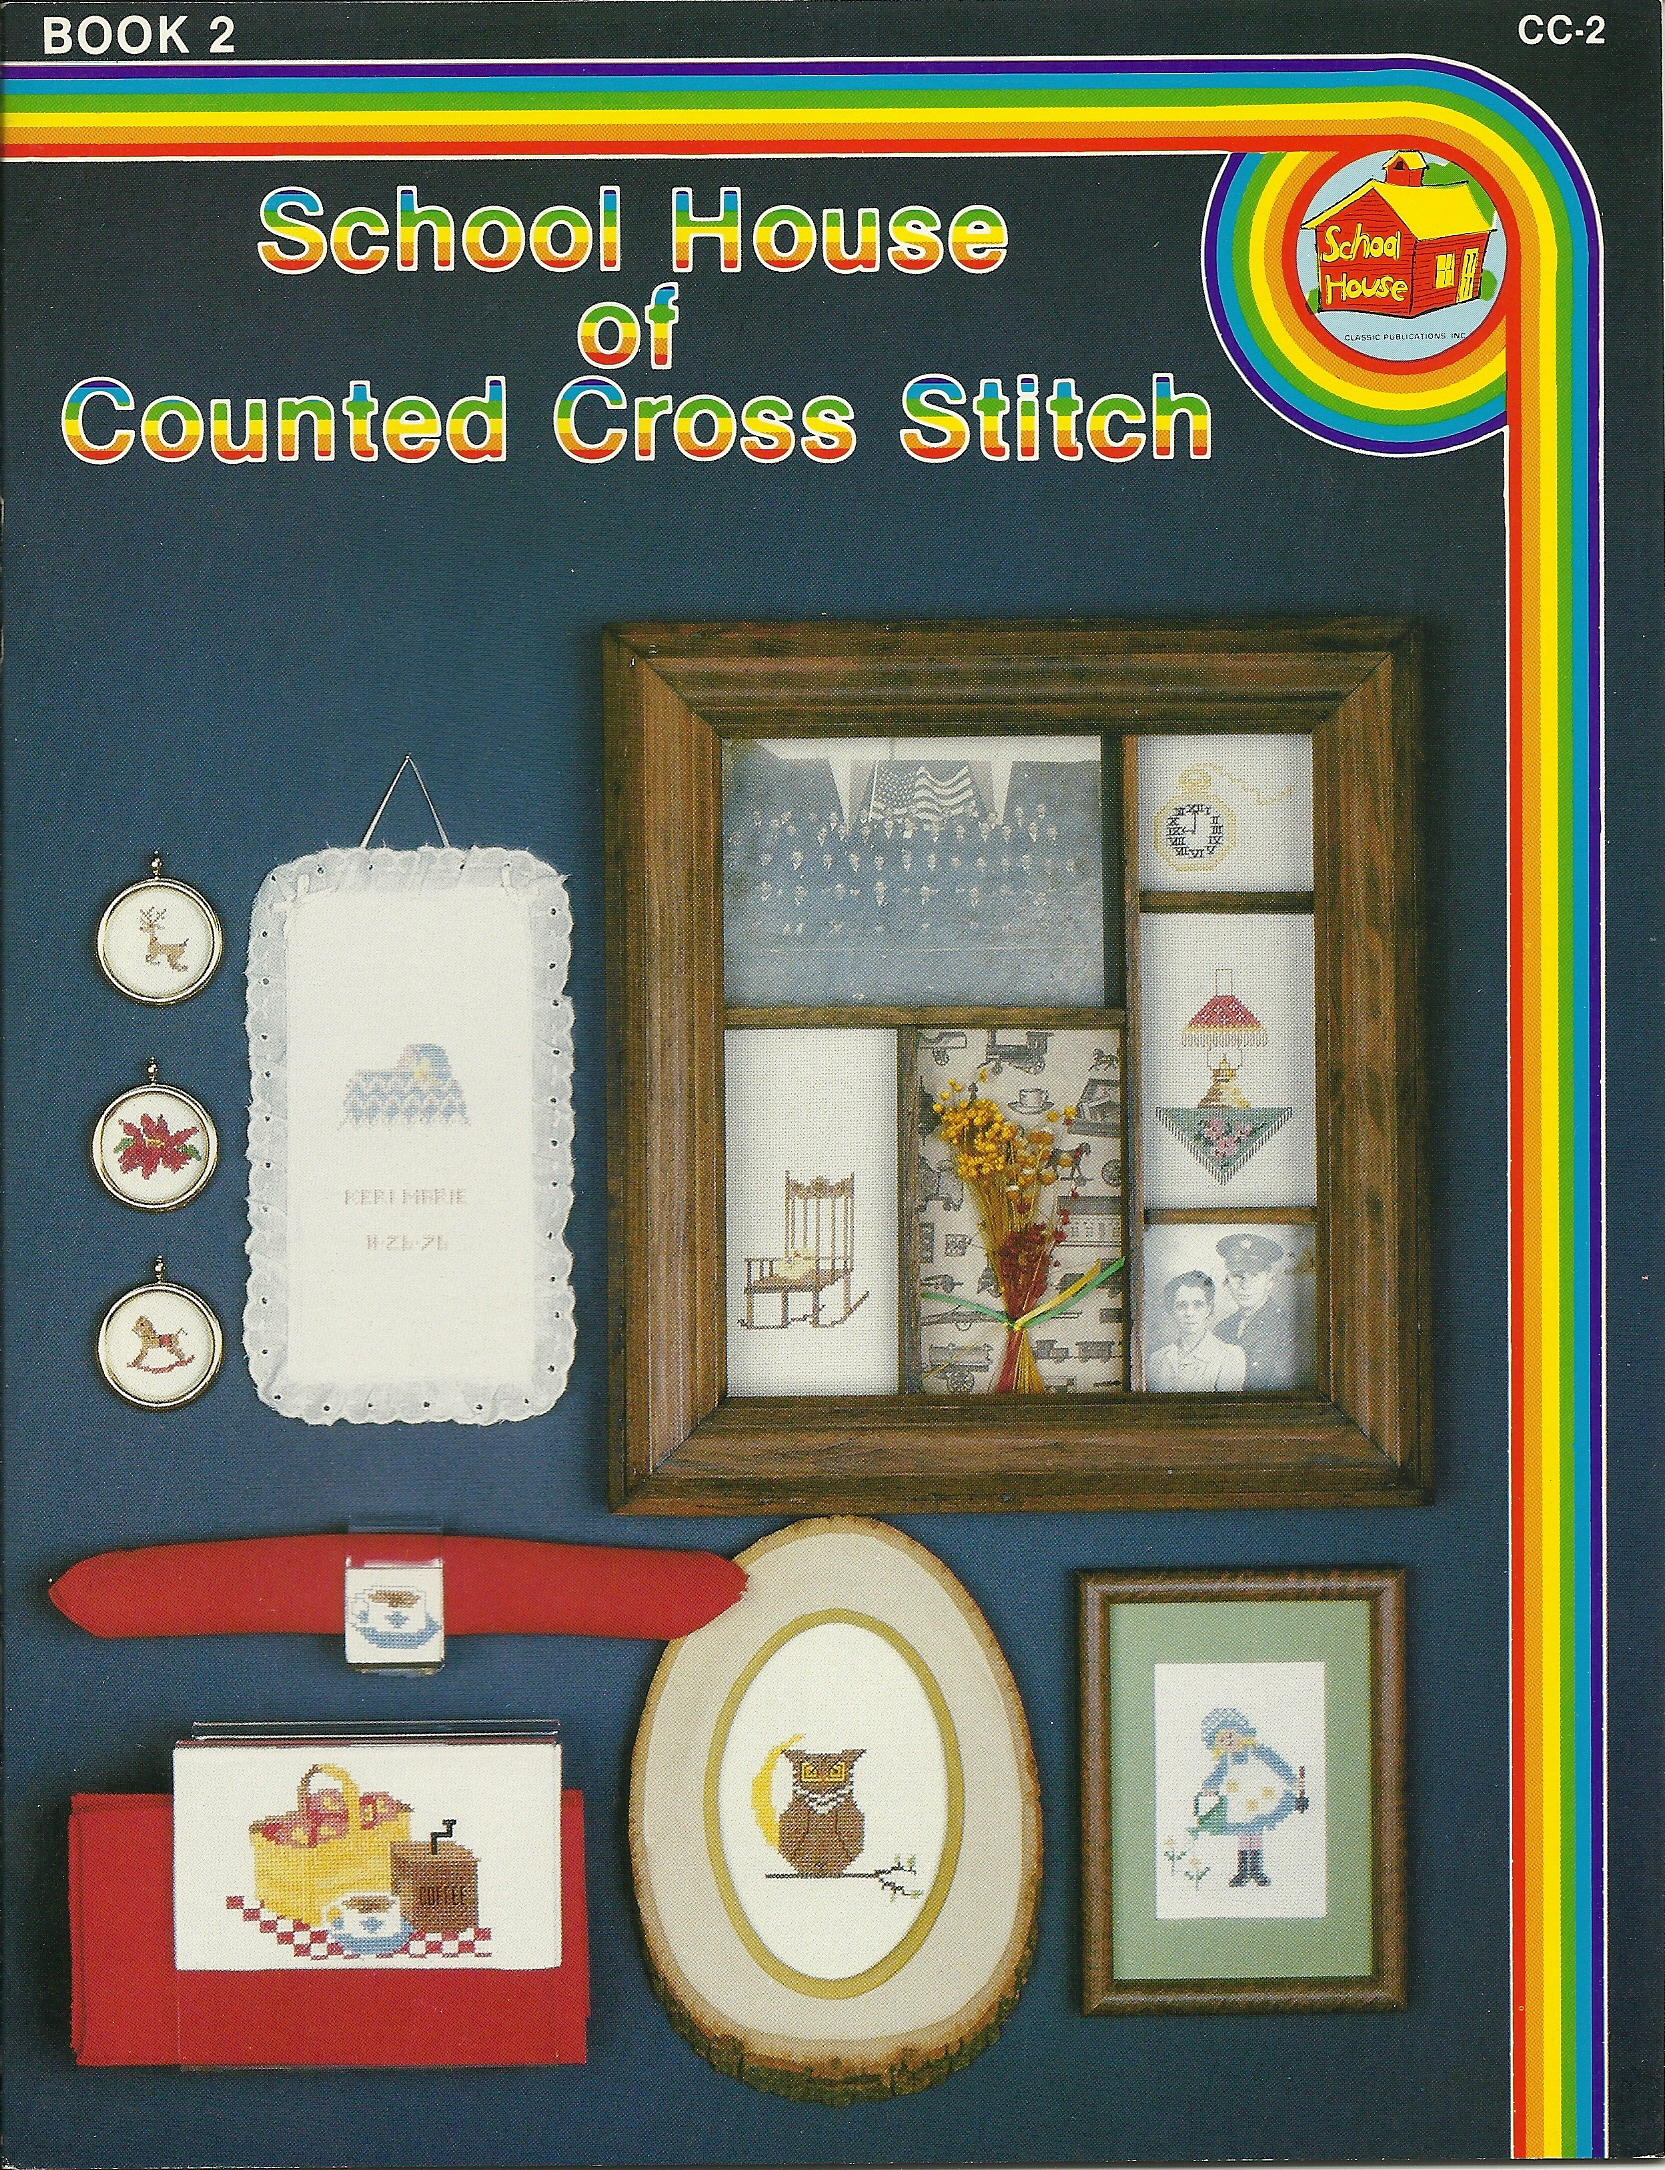 School House of Counted Cross Stitch  Book 2